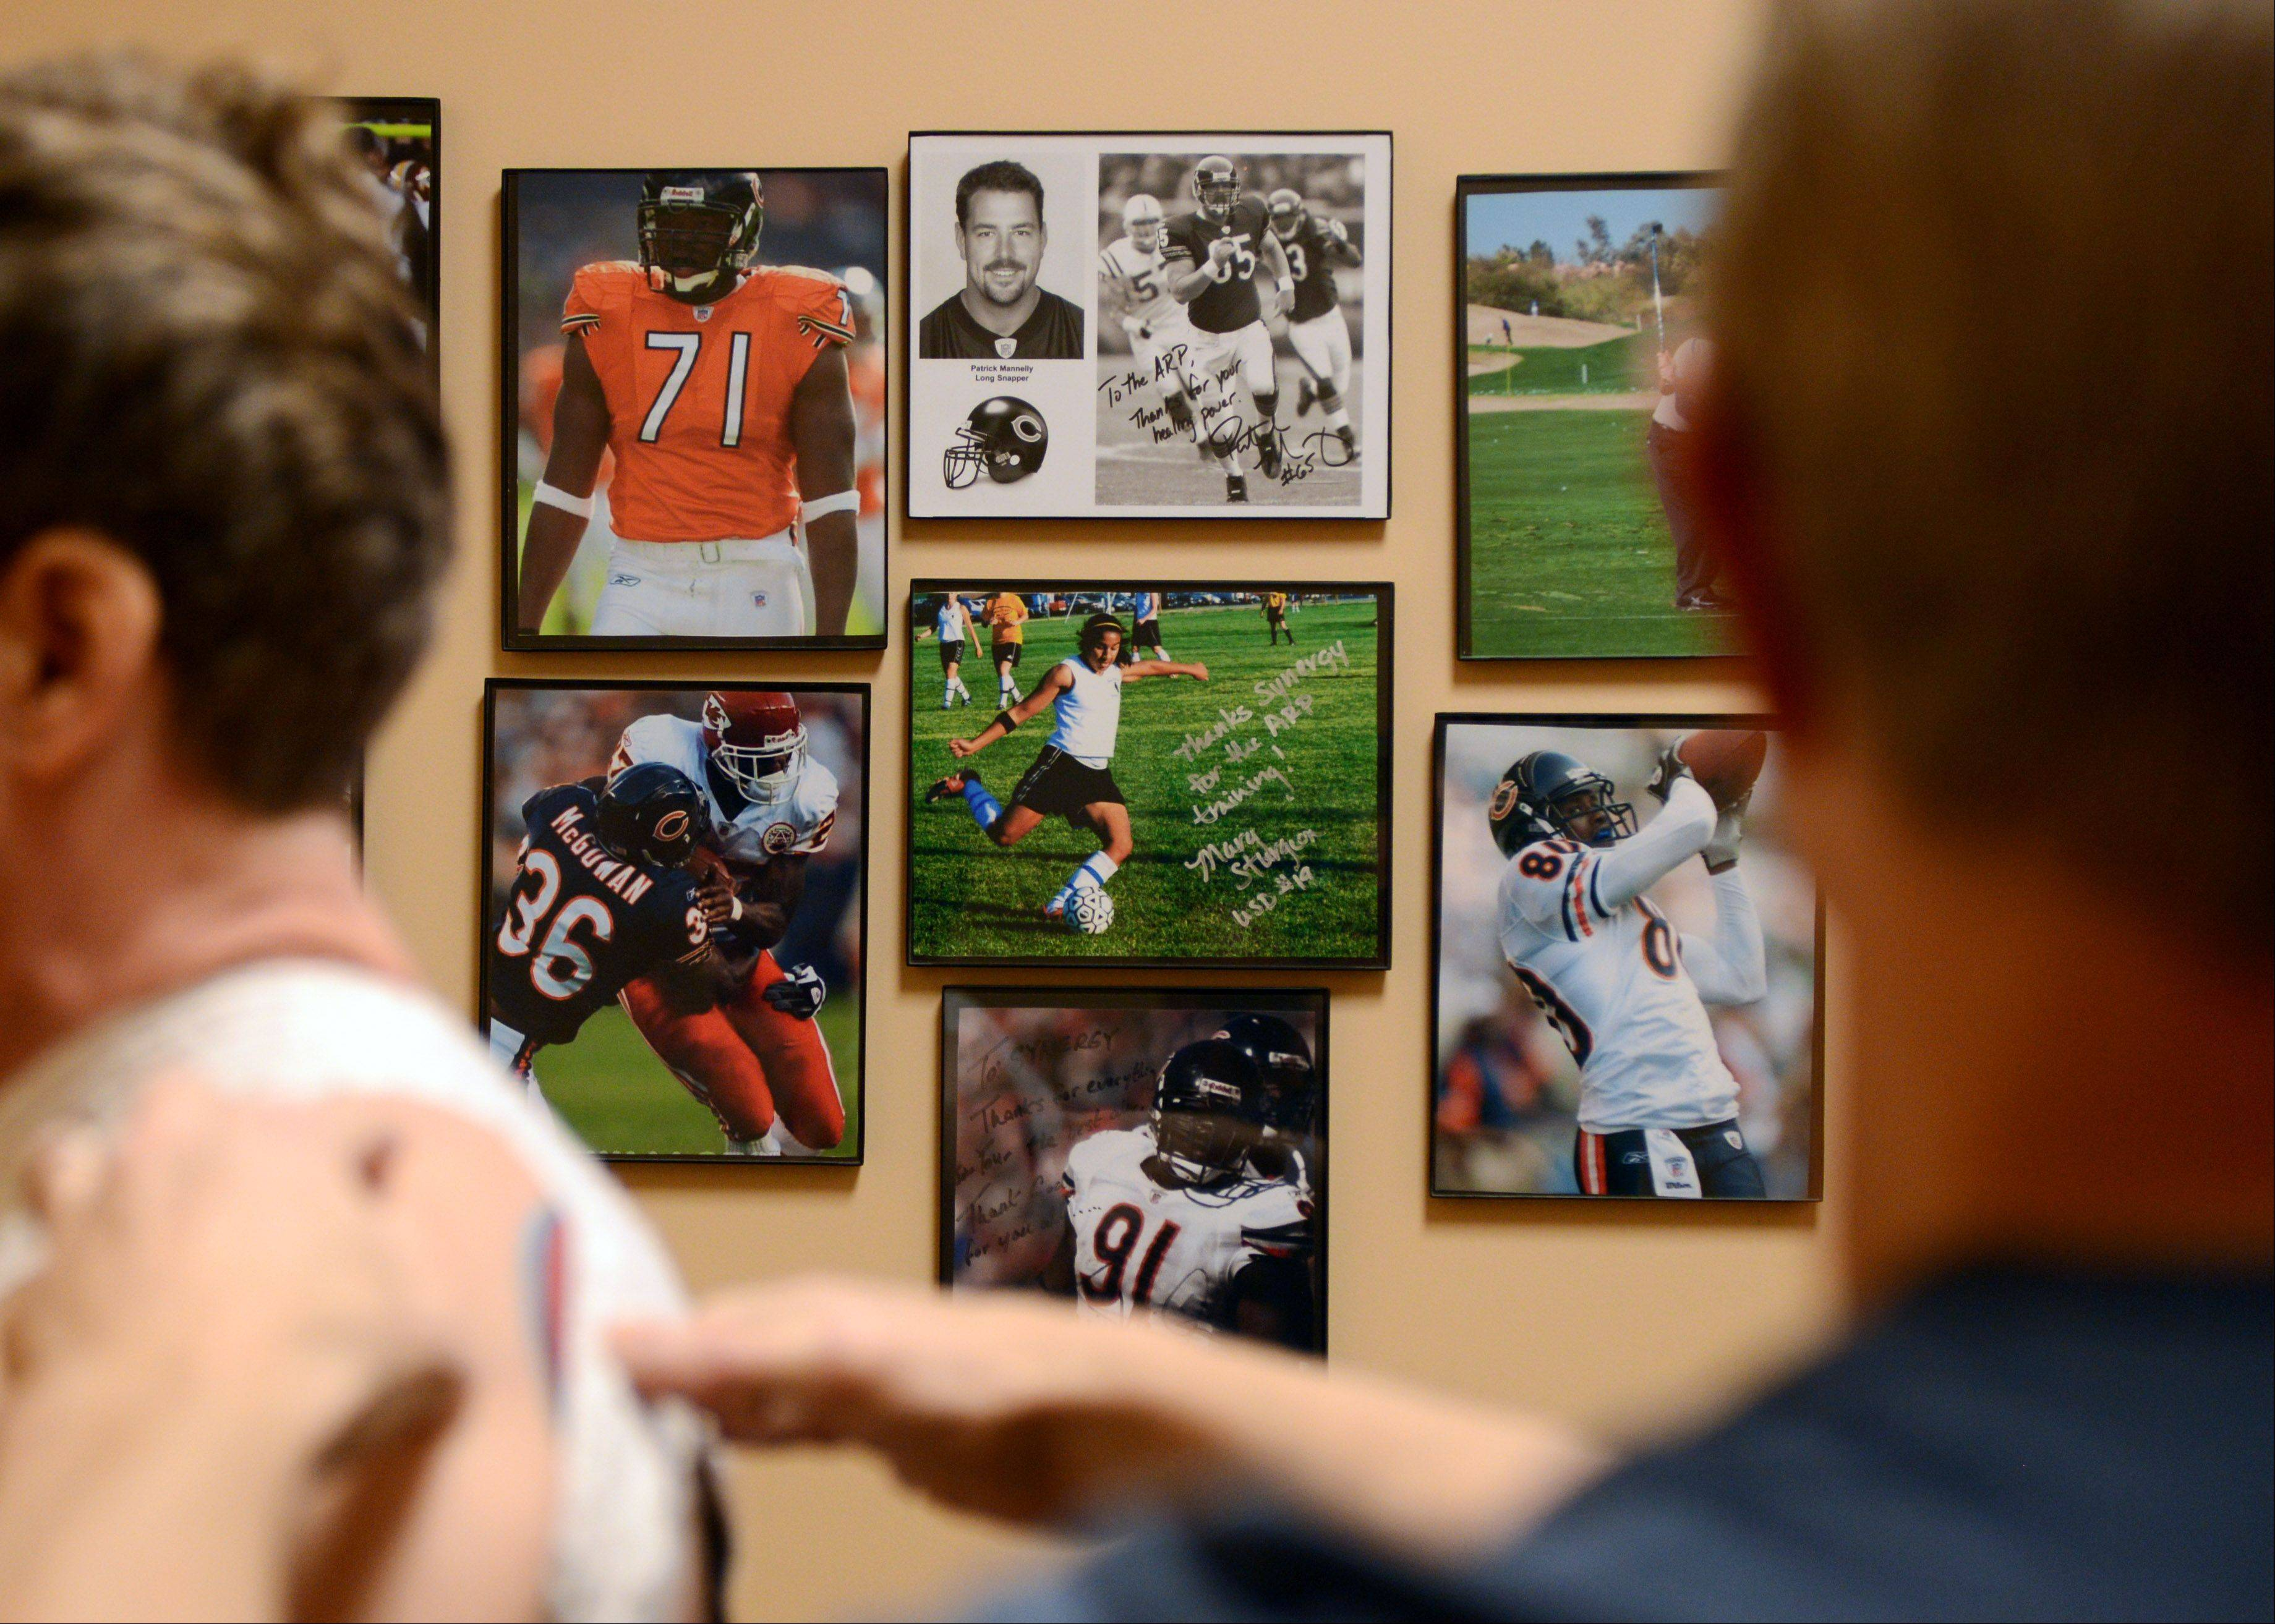 Photos of the professional athletes that John McNulty has worked with at Synergy Fitness adorn the walls at his Libertyville facility. McNulty started implementing the ARP in 2003, and his facility was the first in Illinois to use it. Today, many NFL players have their own ARP, which McNulty encourages them to use.